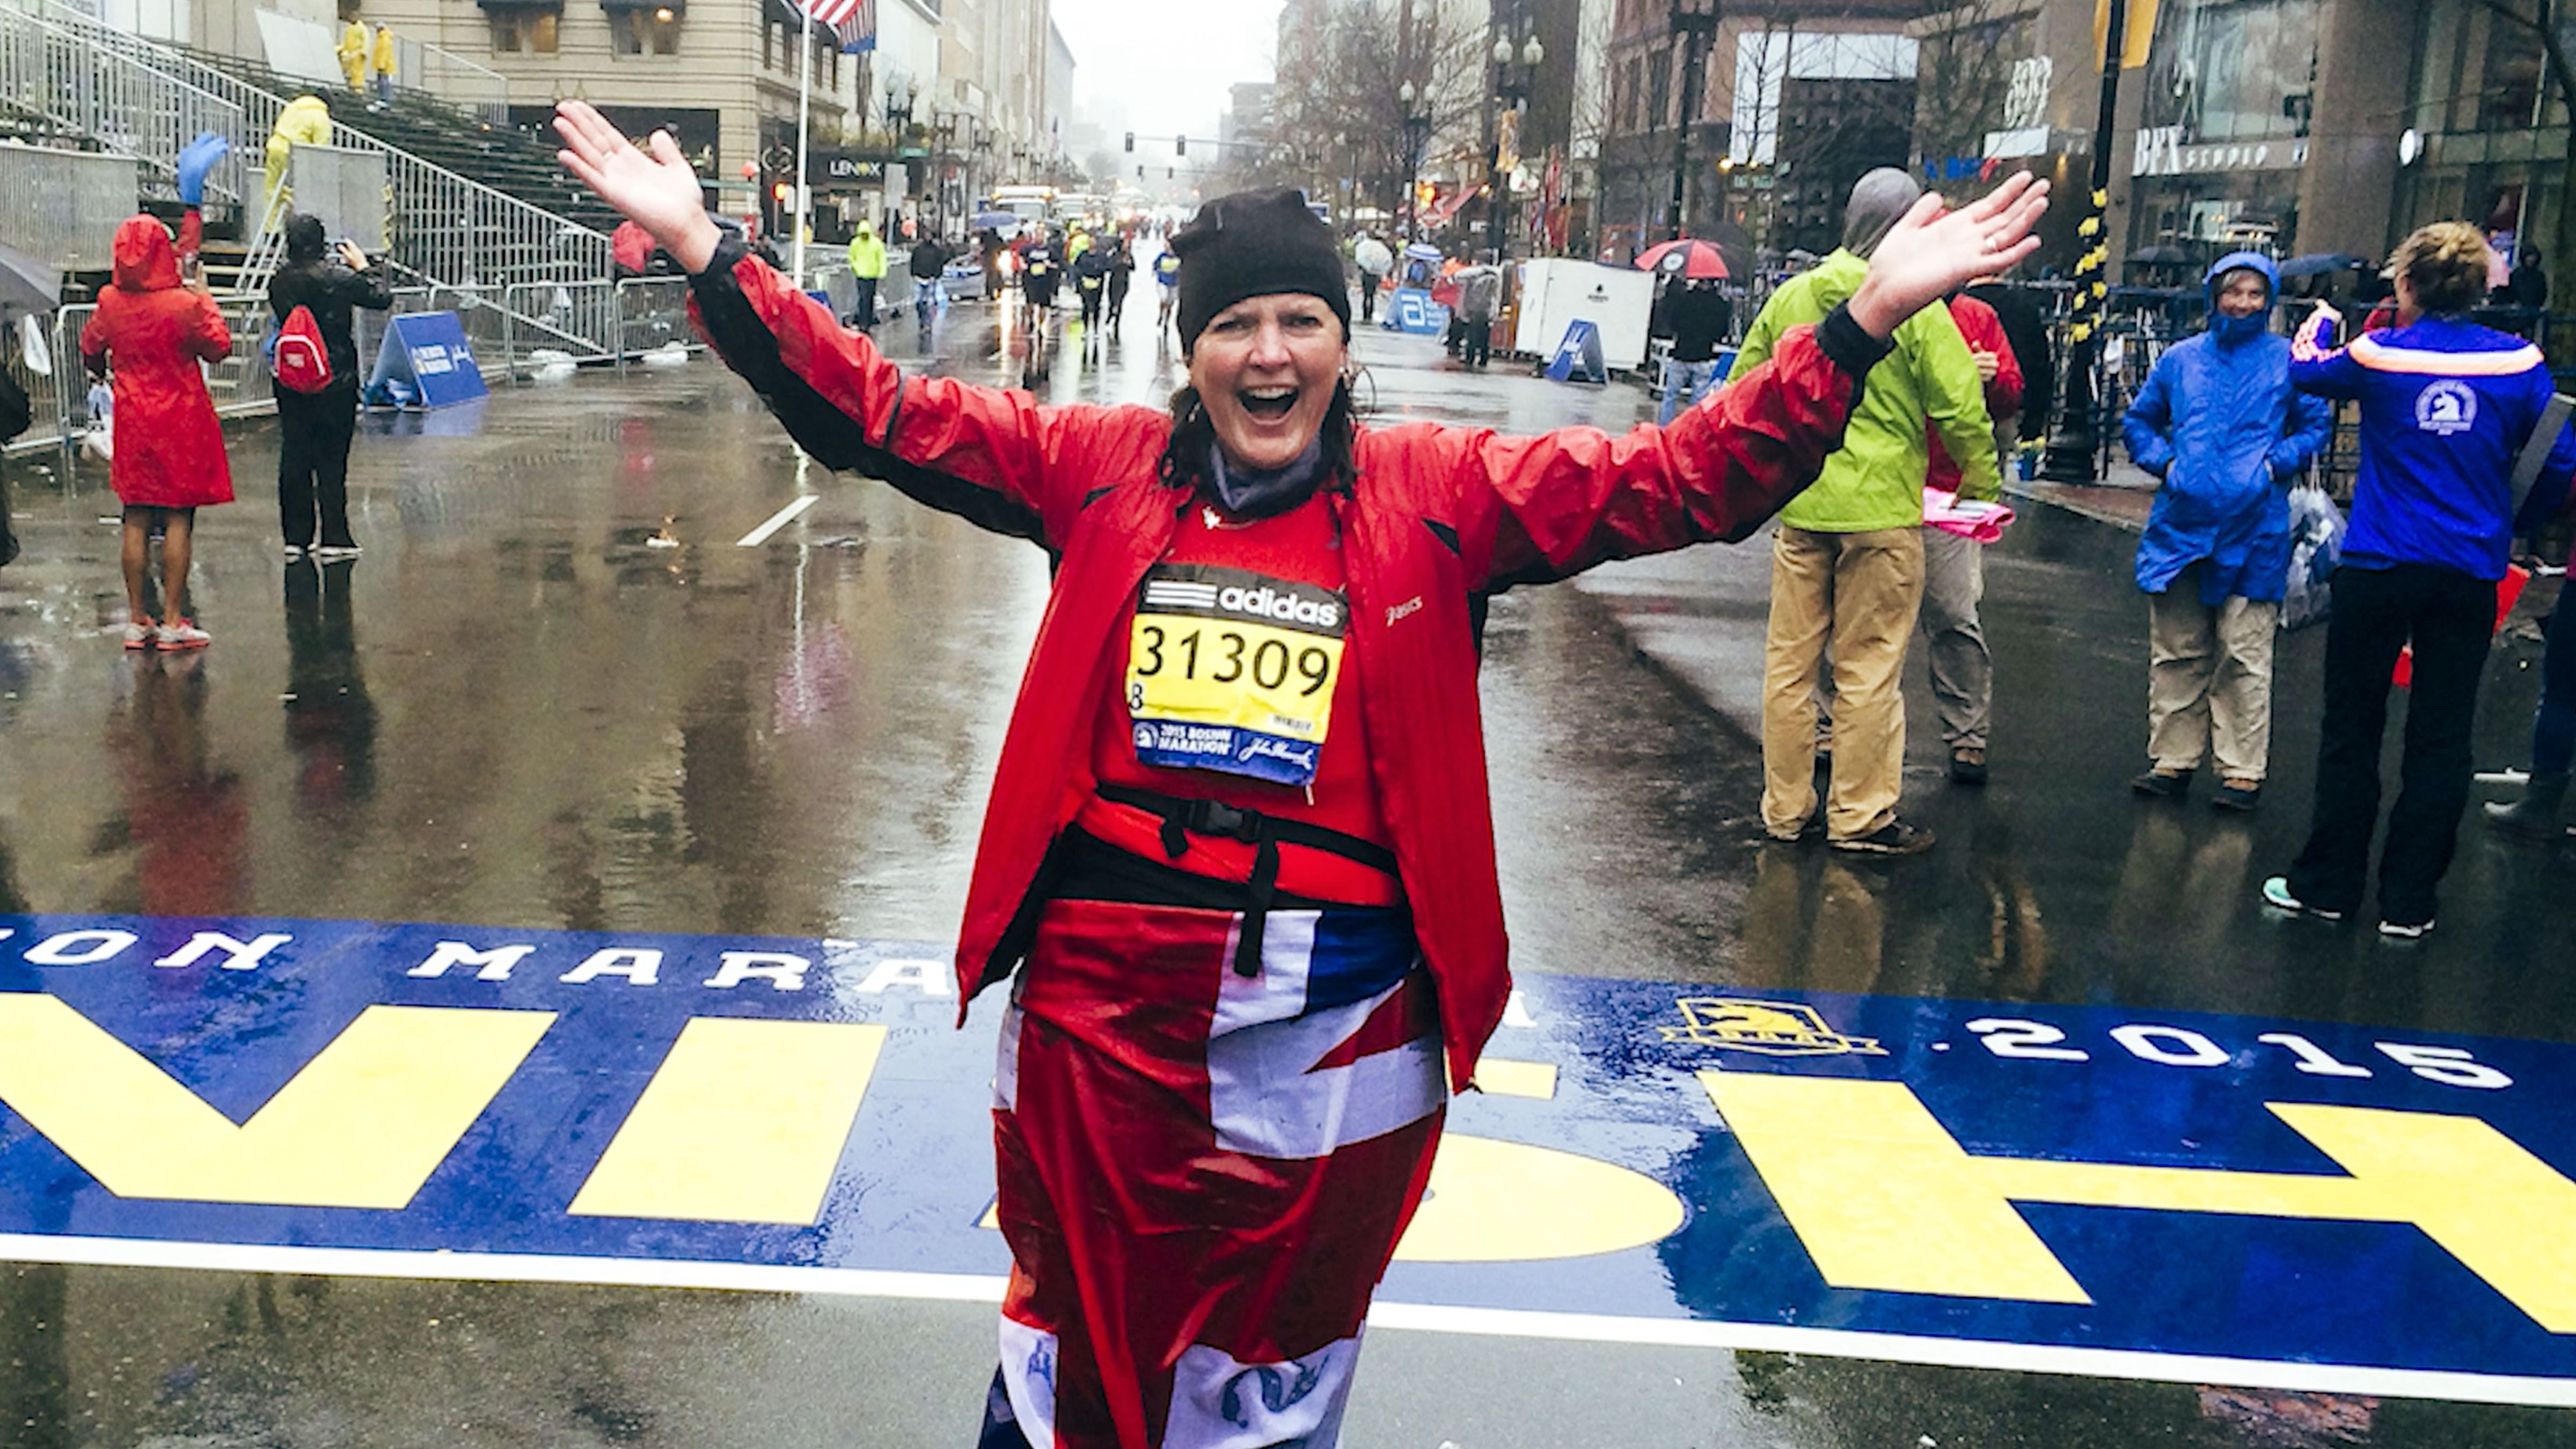 This Woman Proves It's Not So Bad to Finish Last